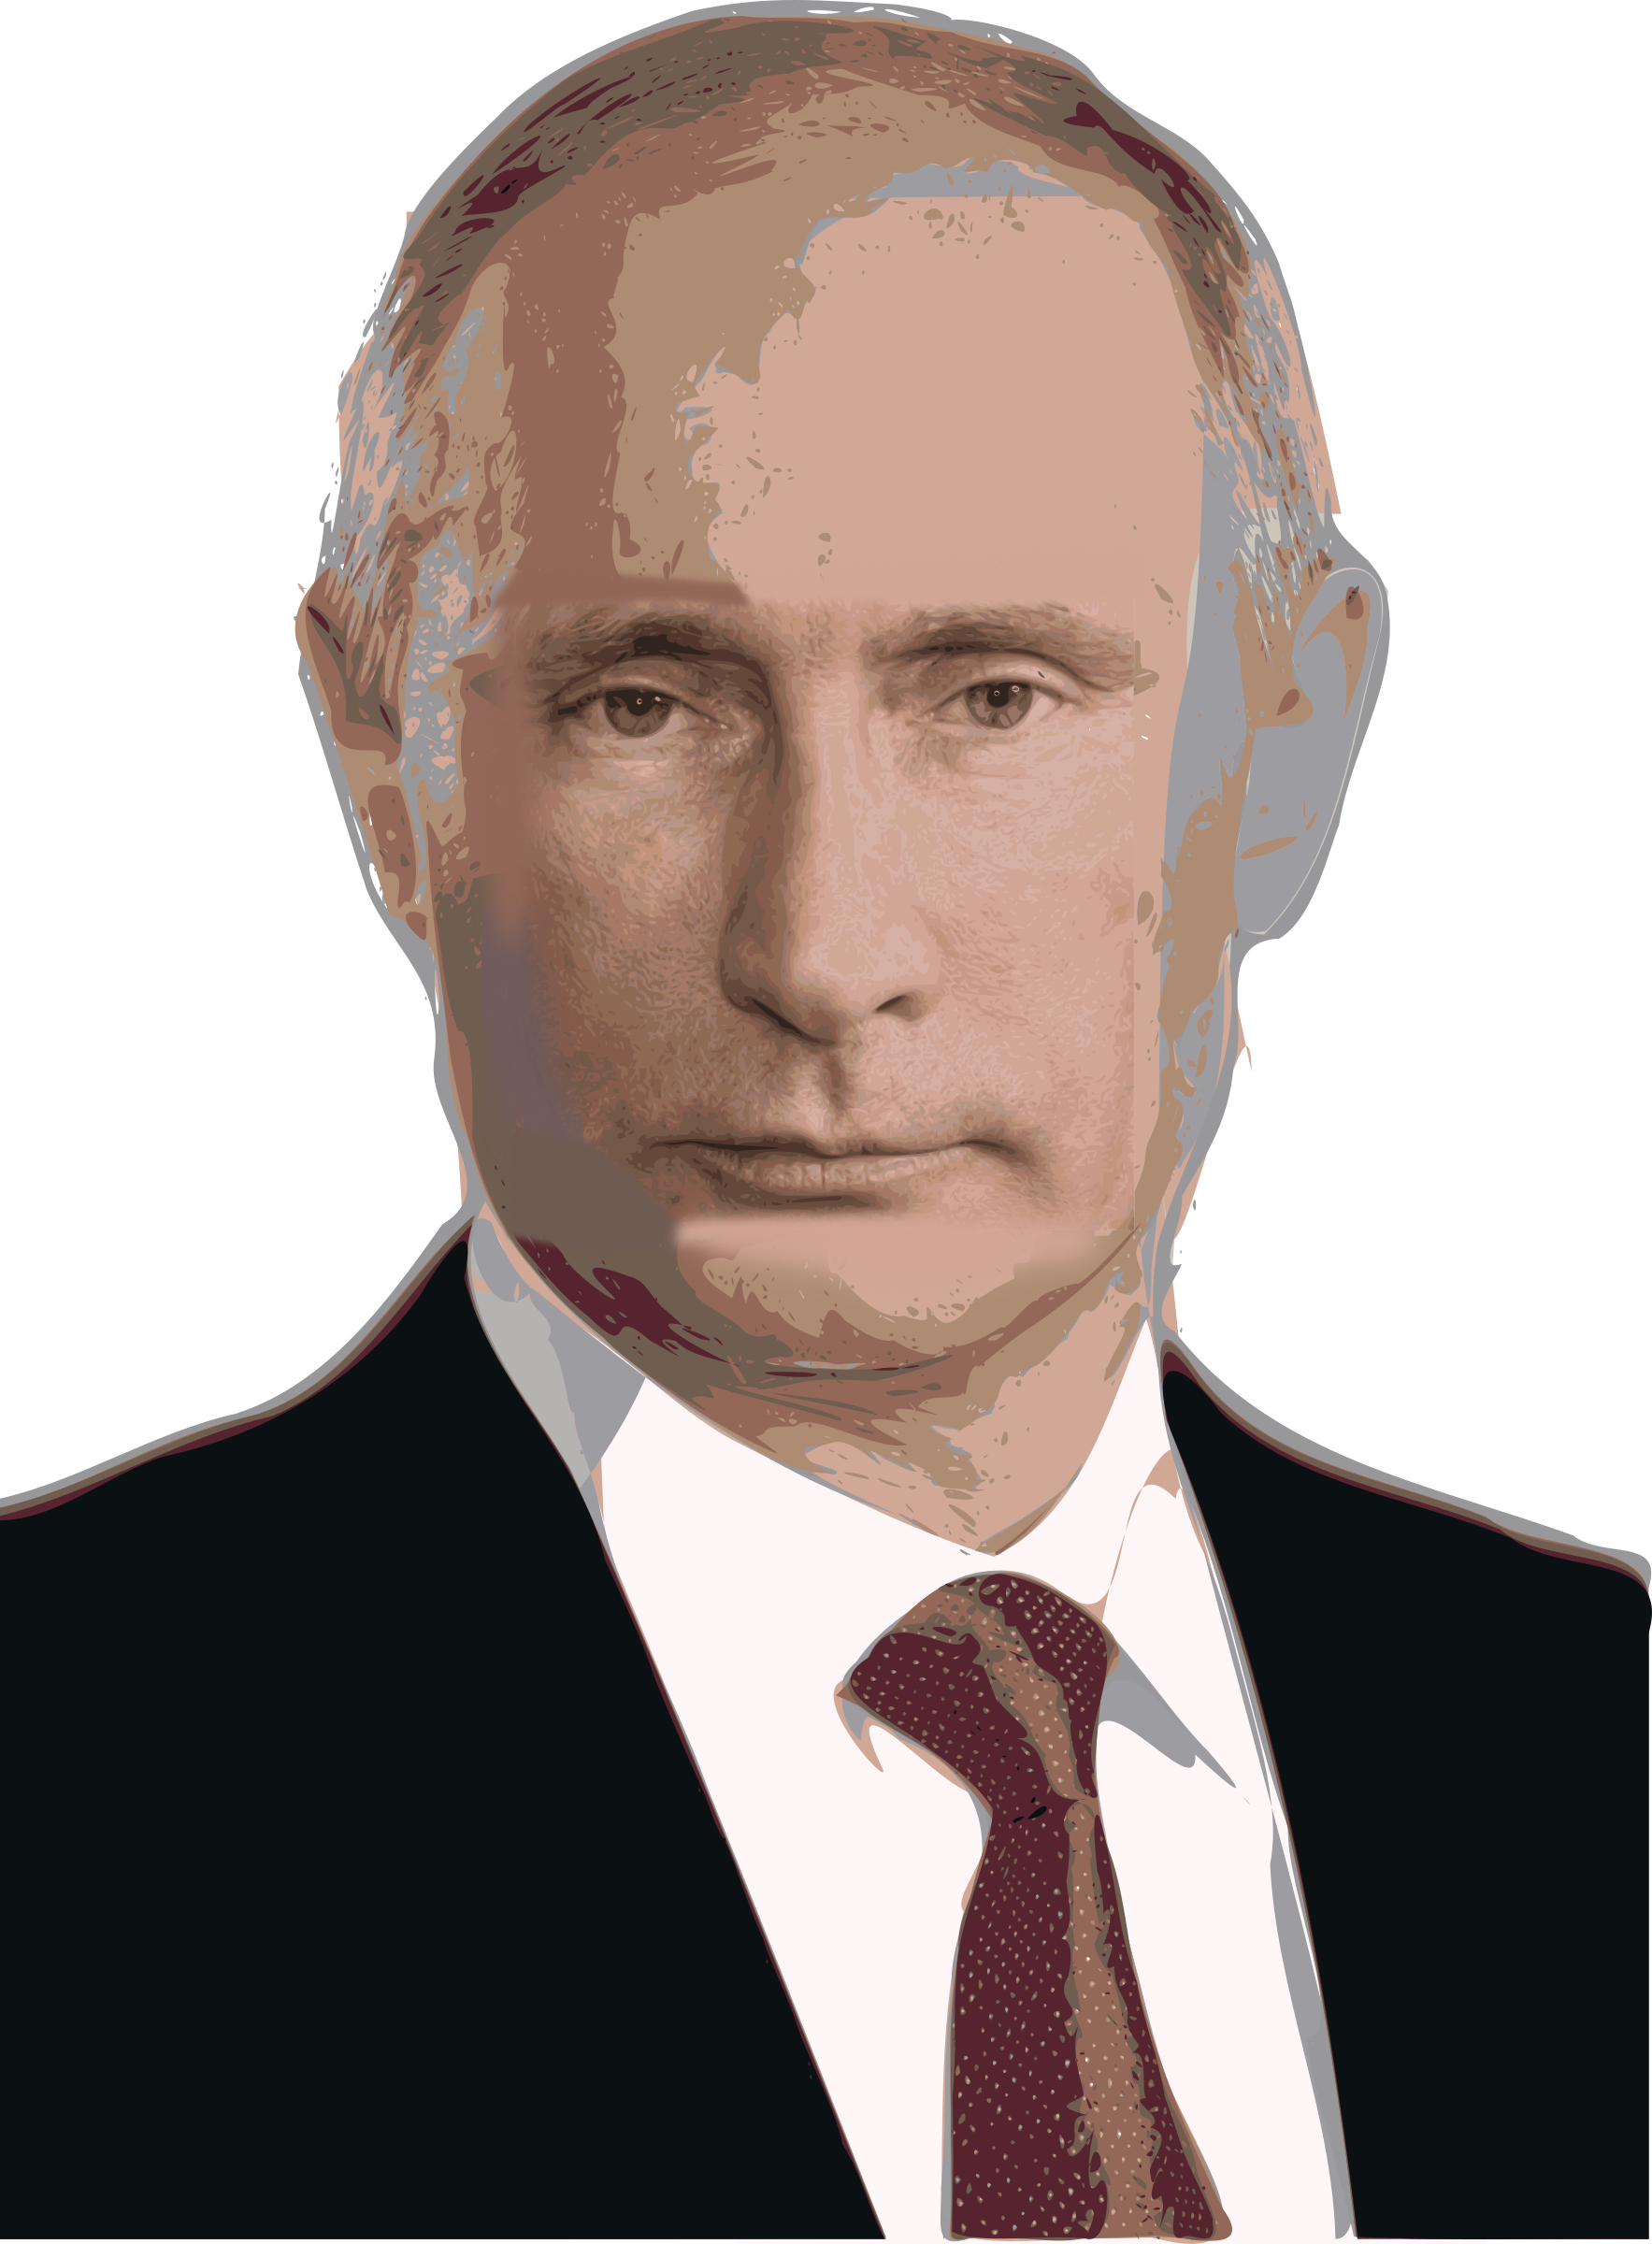 Putin face png. Vladimir icons free and